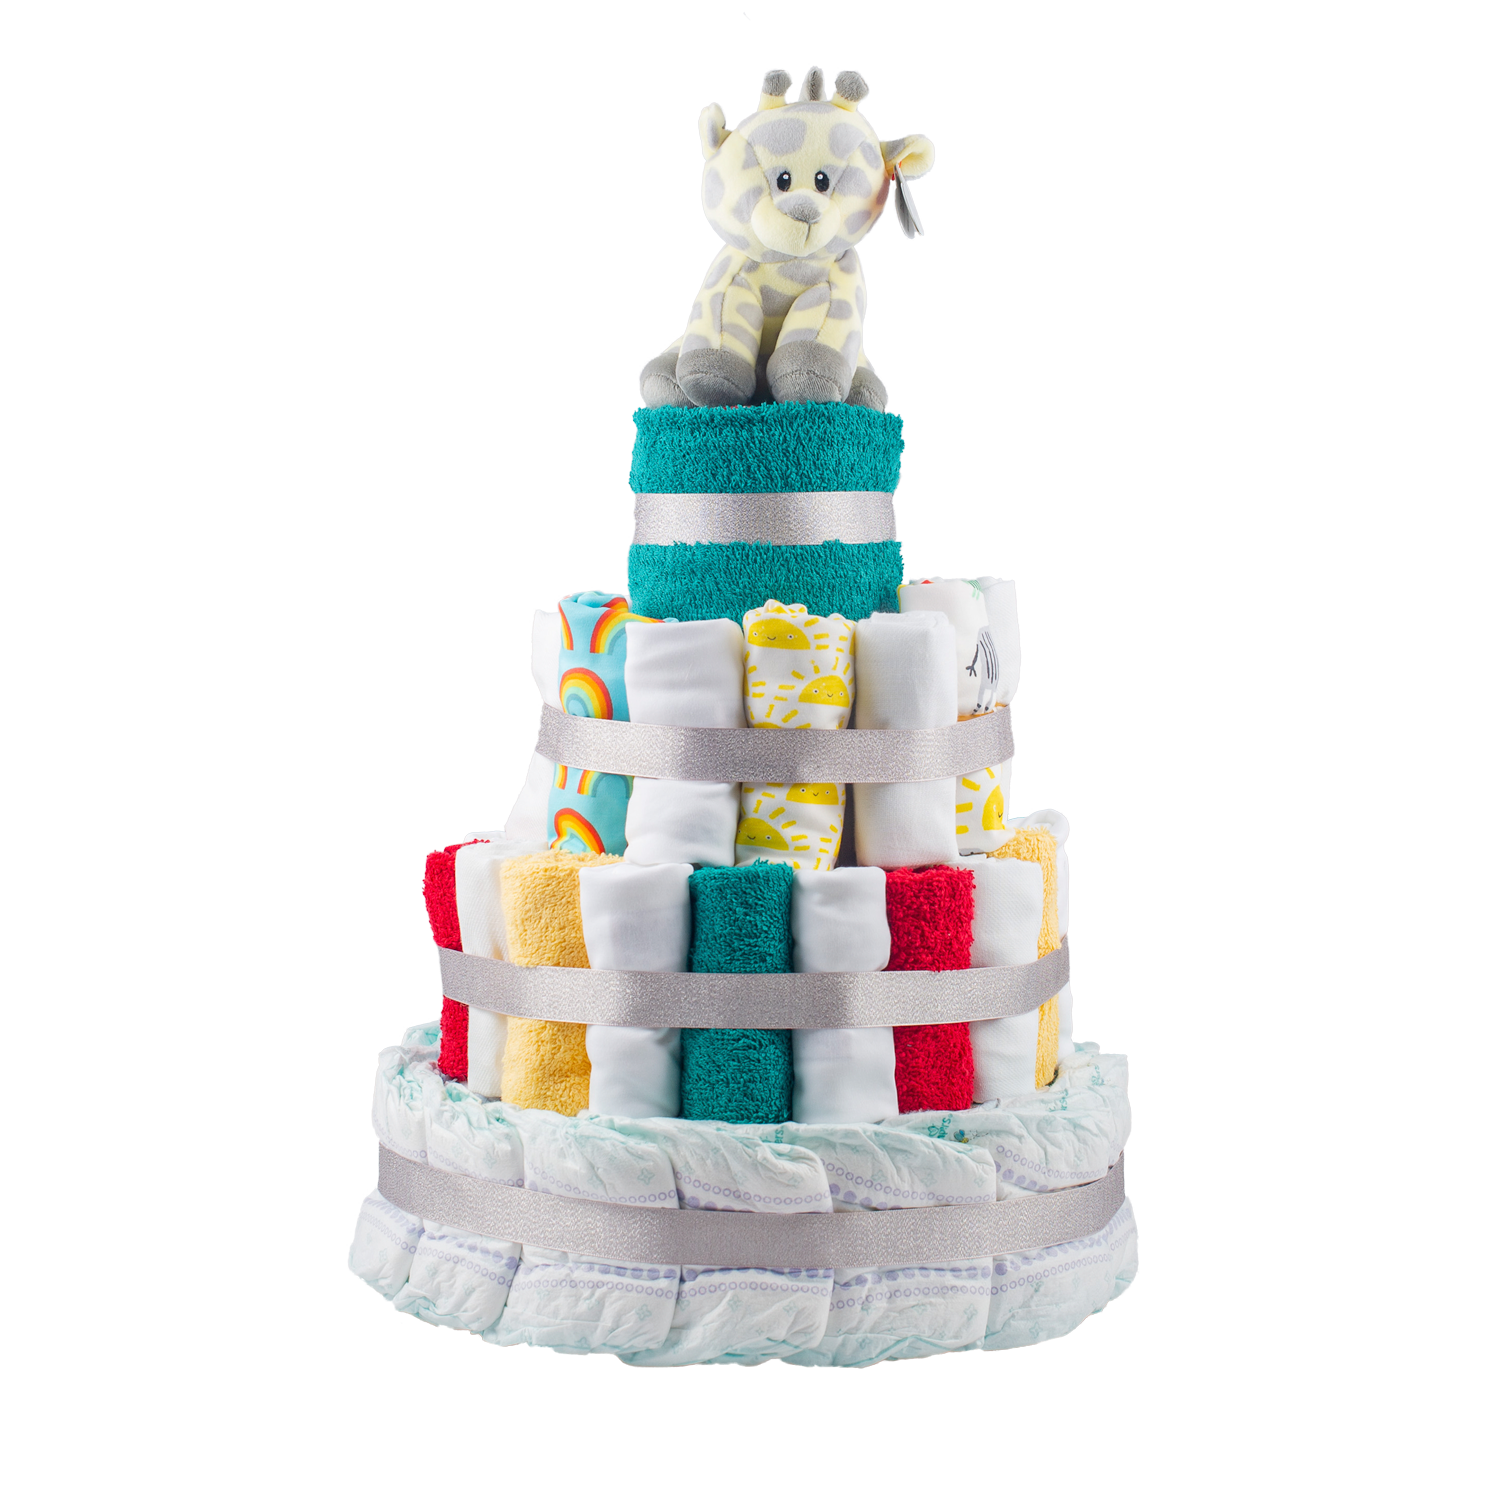 Stylish 4-Tier Multi-Coloured Nappy Cake